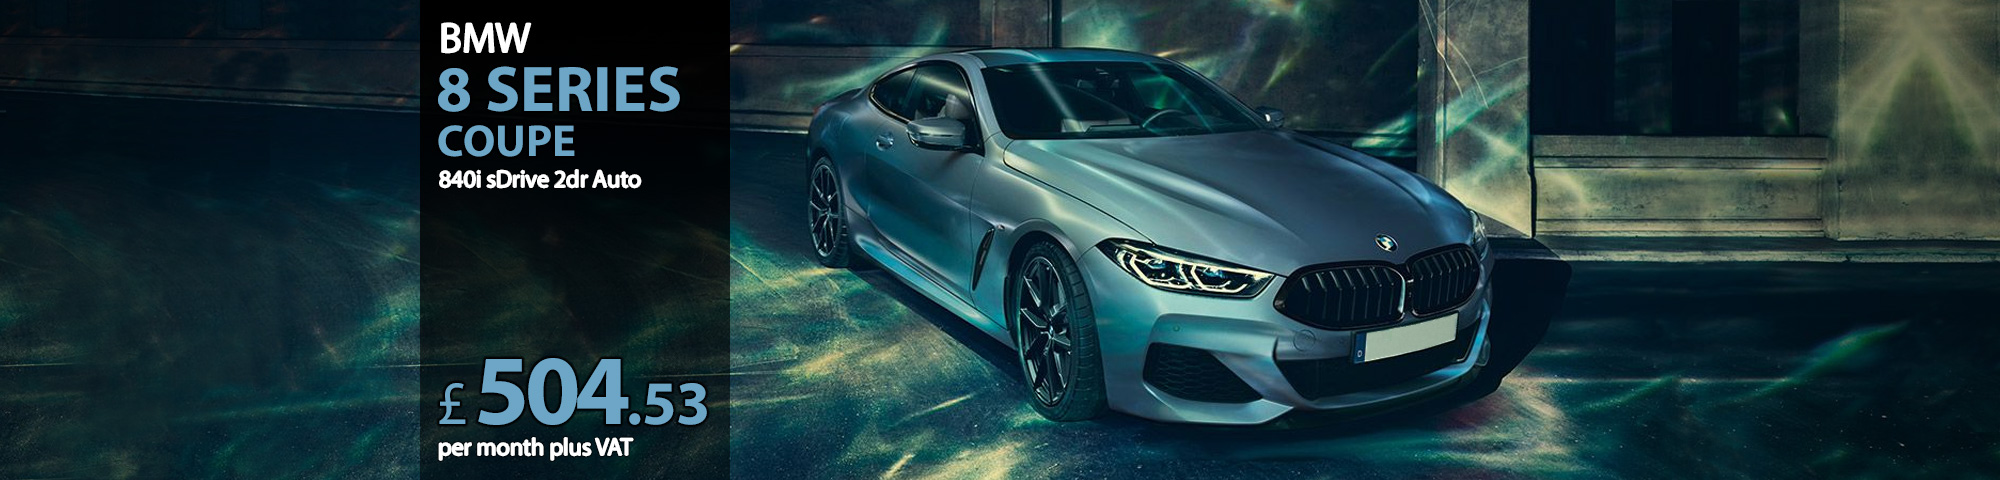 BMW 8 SERIES COUPE 840i sDrive 2dr Auto